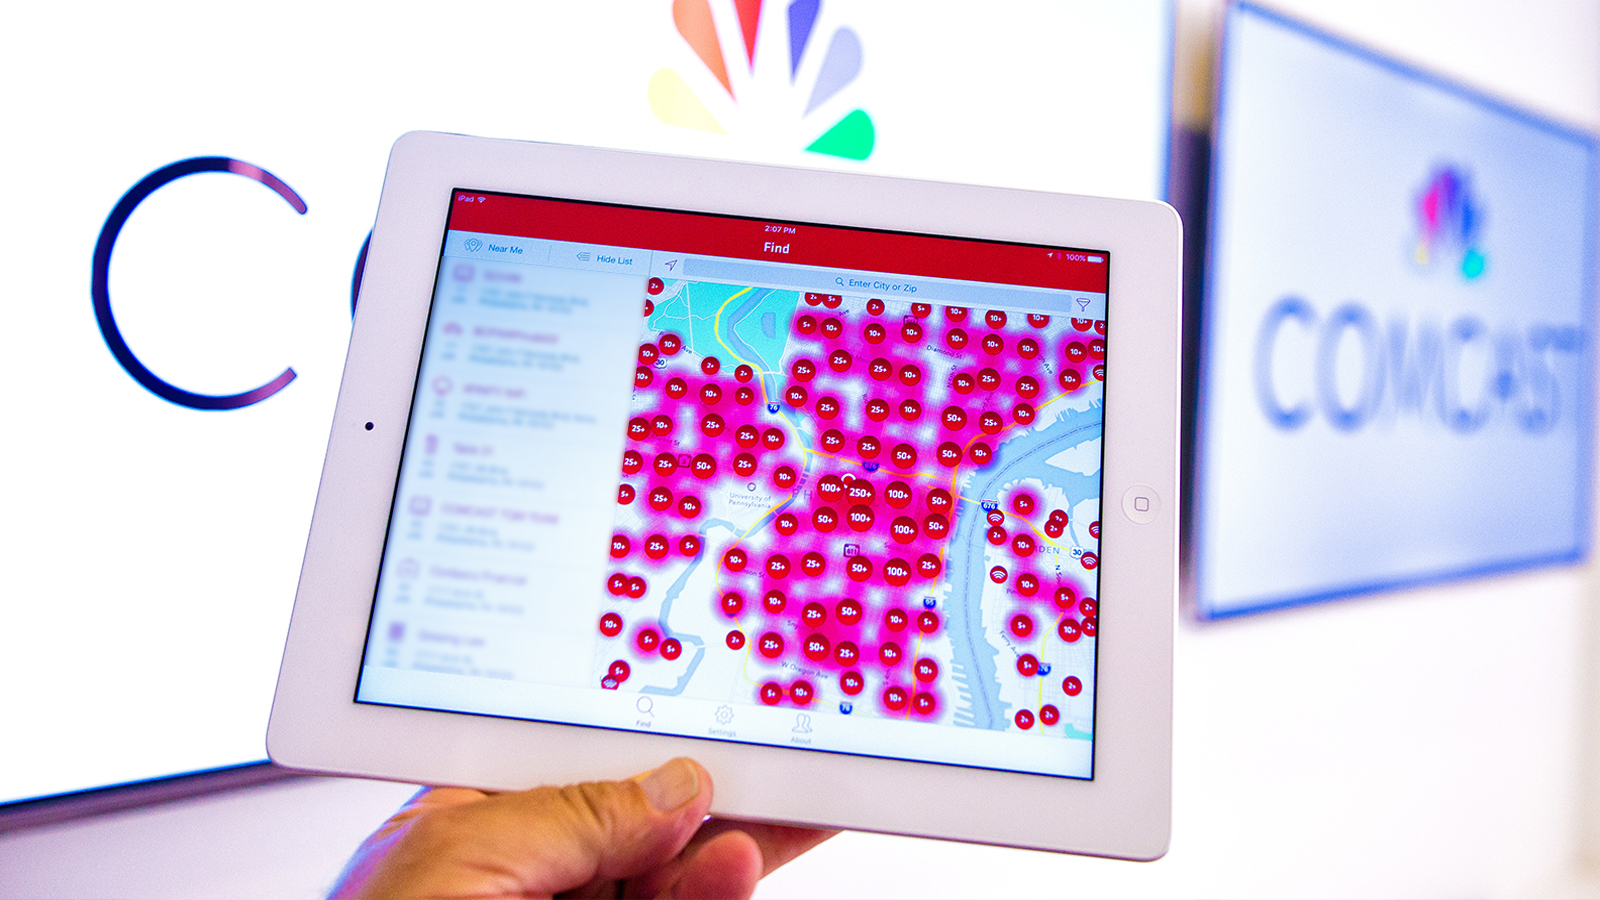 Comcast Opens Free Xfinity WiFi Hotspots to Aid Residents